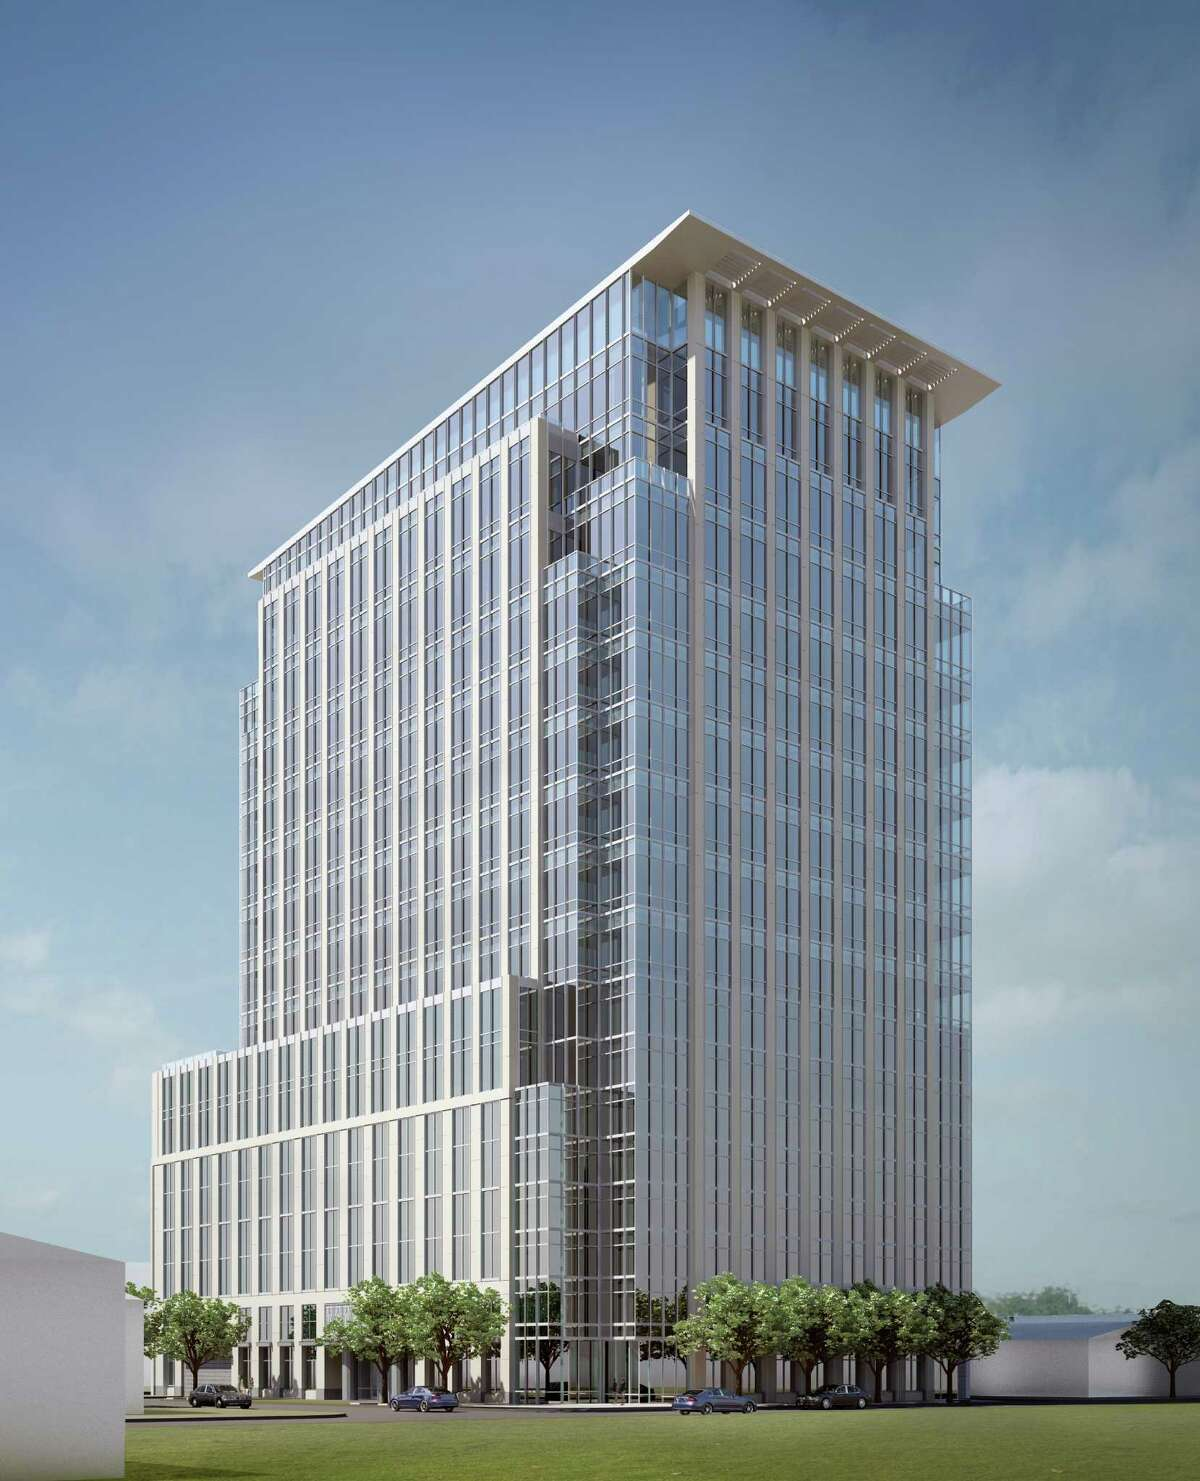 The Hines office tower to be built at 2229 San Felipe, shown in a rendering, is to be 17 stories tall, with eight floors for parking.